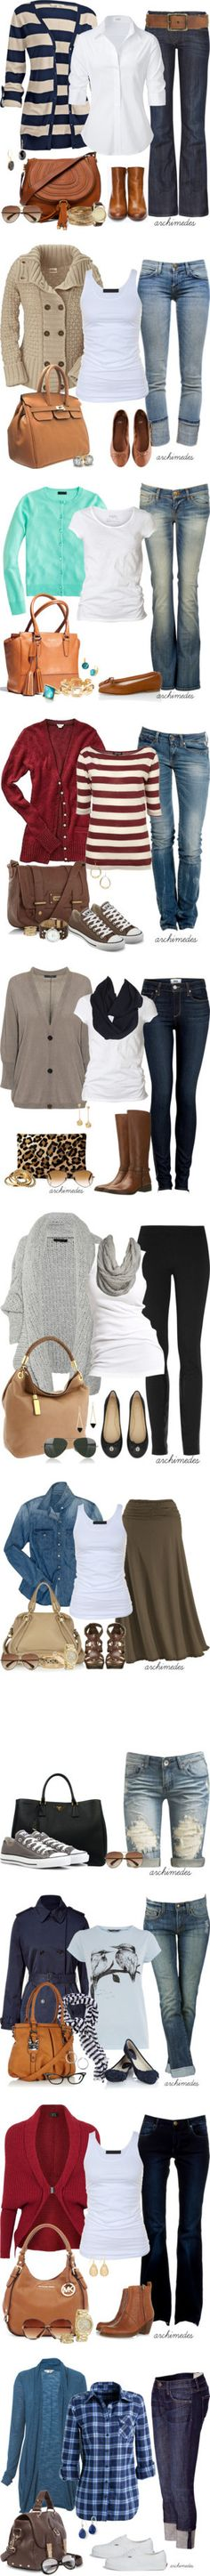 Cute combos for Fall!